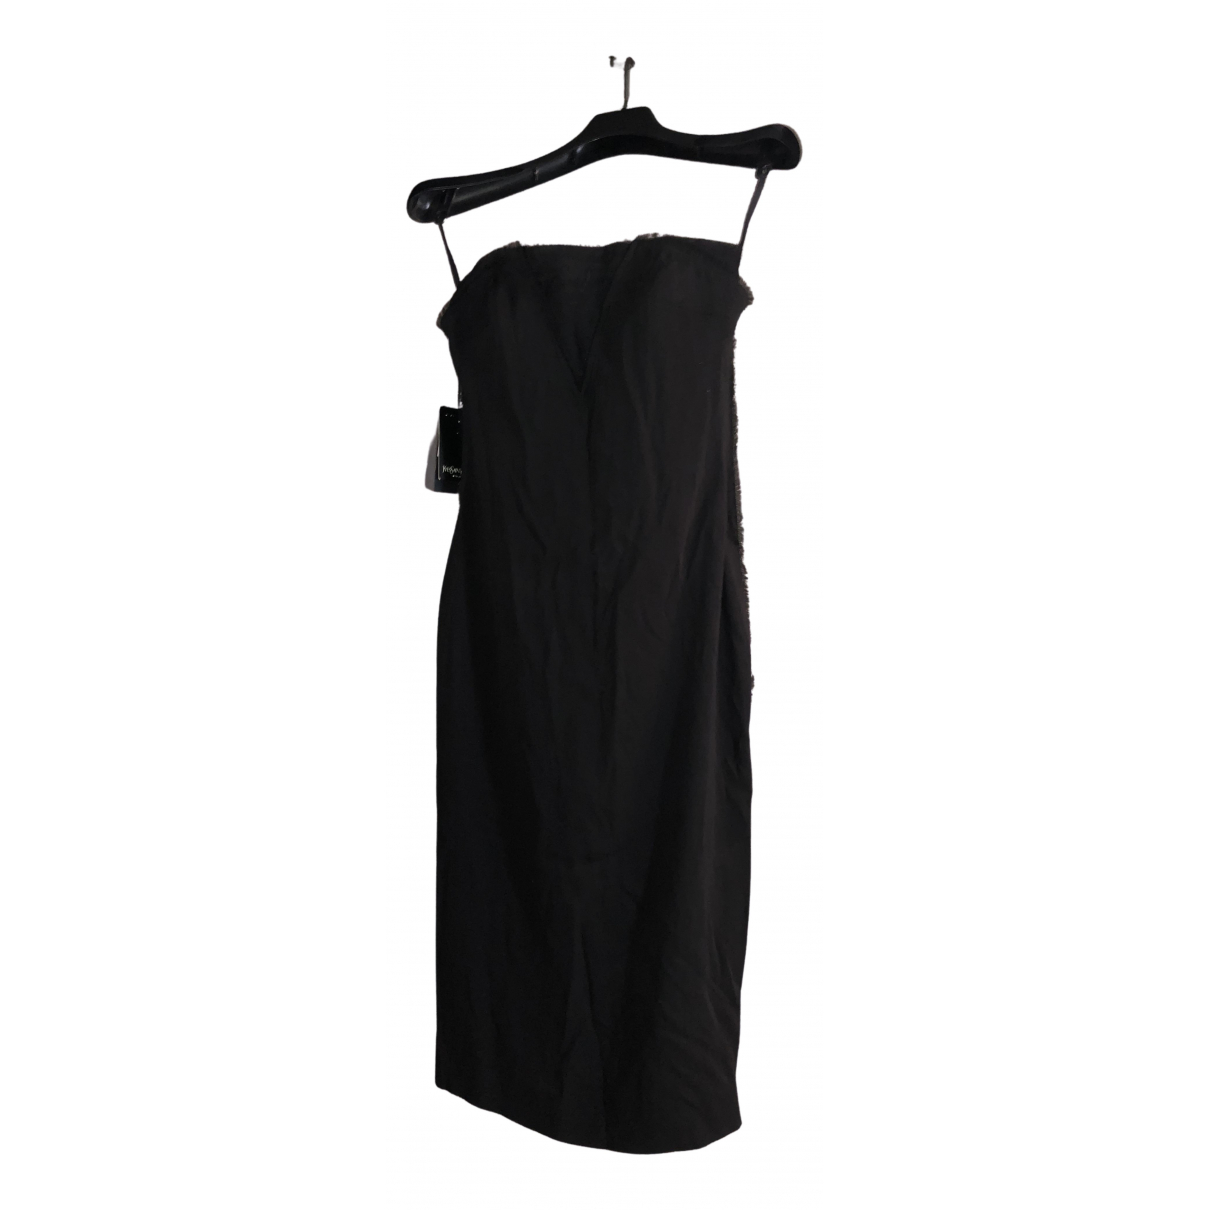 Yves Saint Laurent \N Kleid in  Schwarz Seide